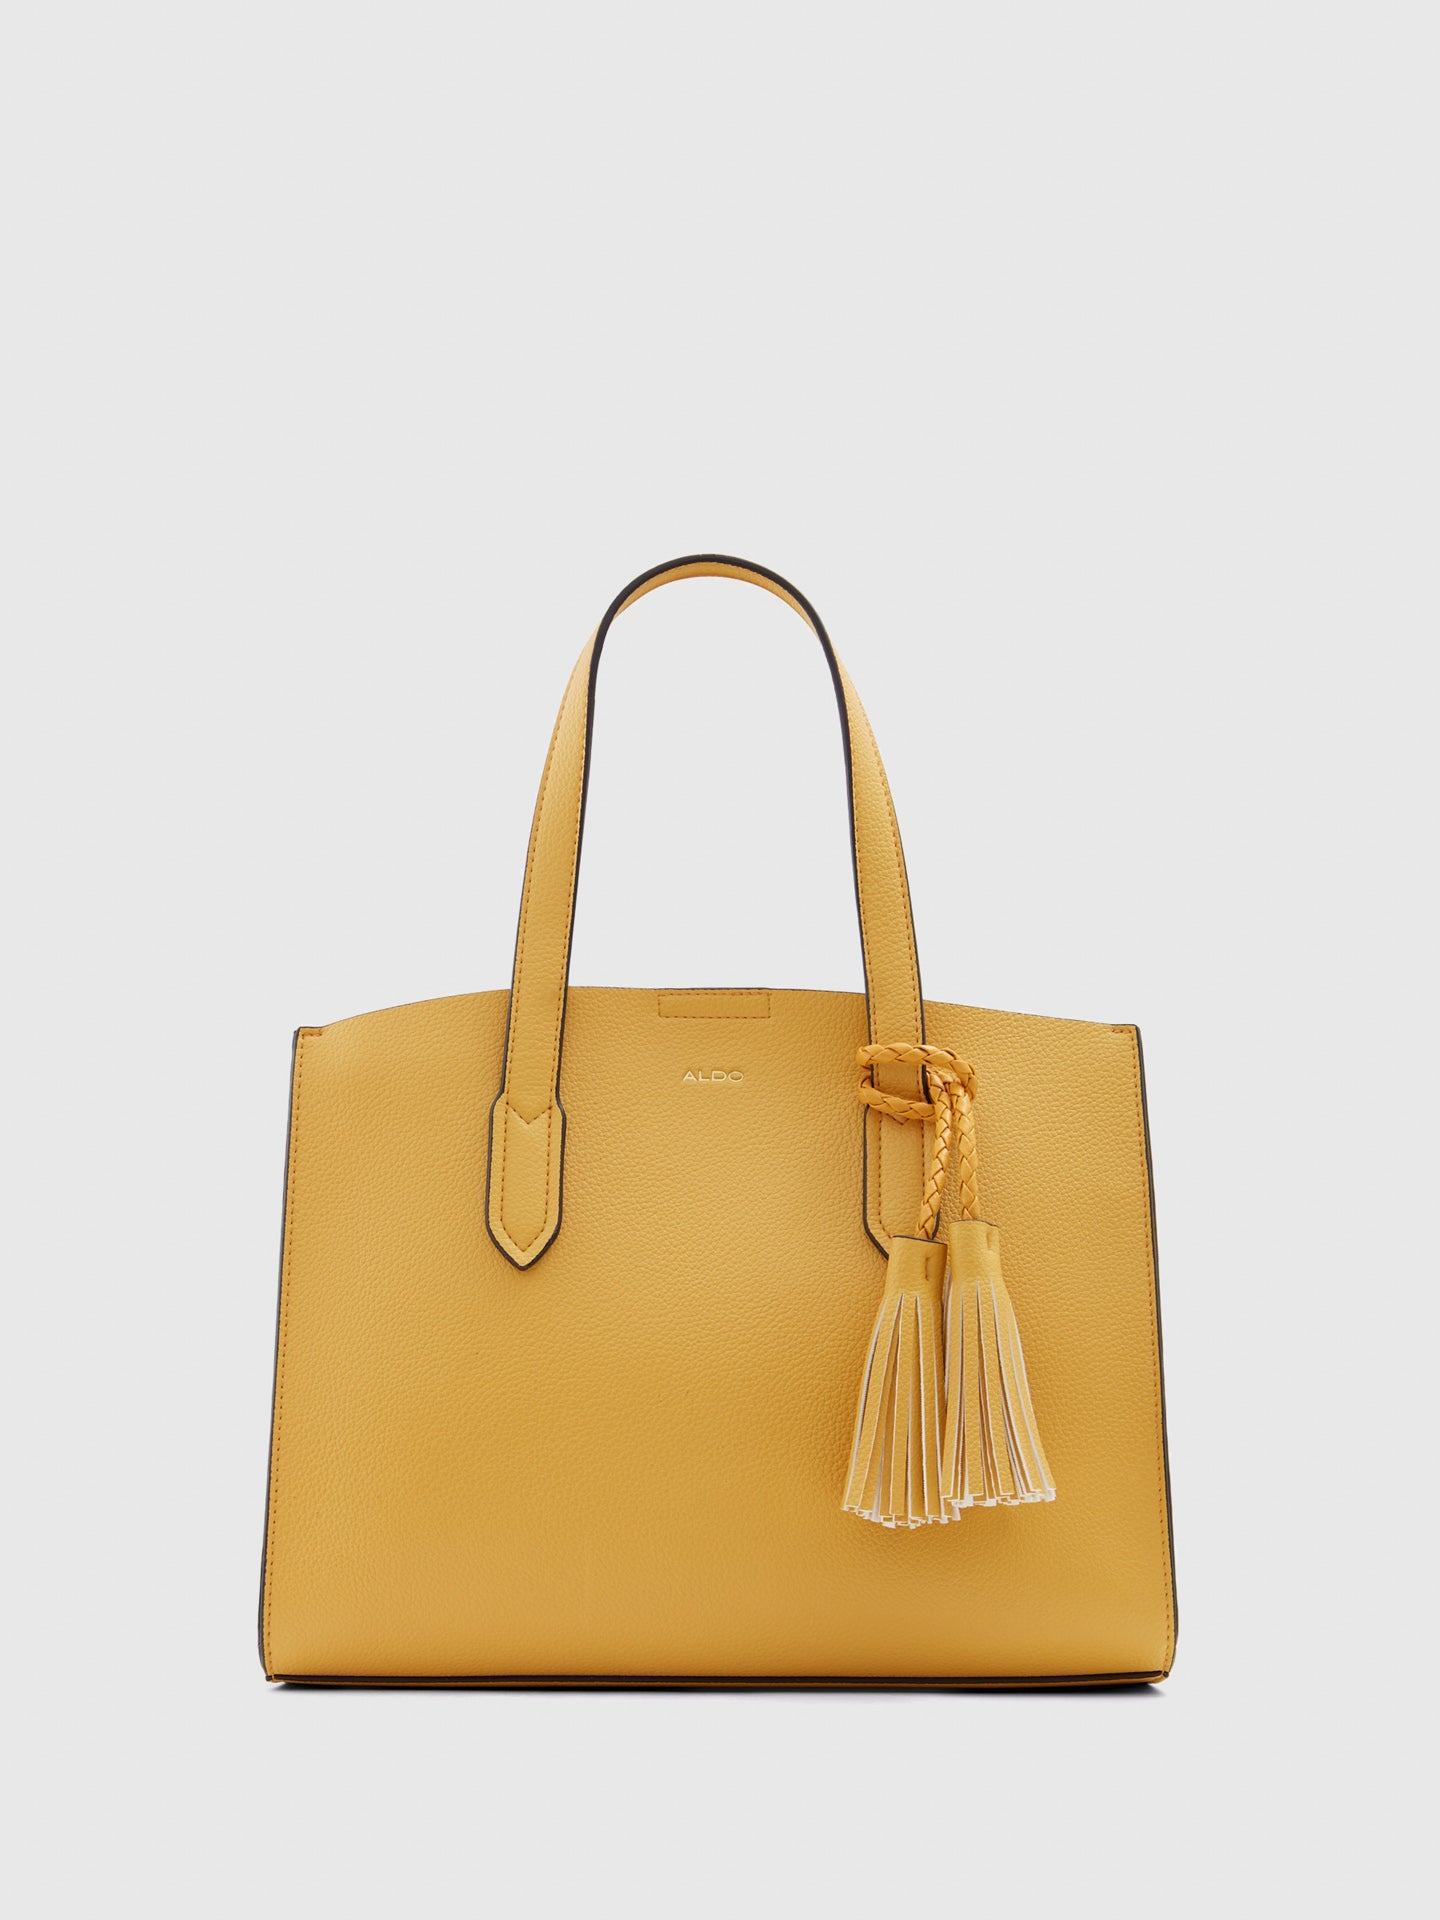 Aldo Yellow Shoulder Bag